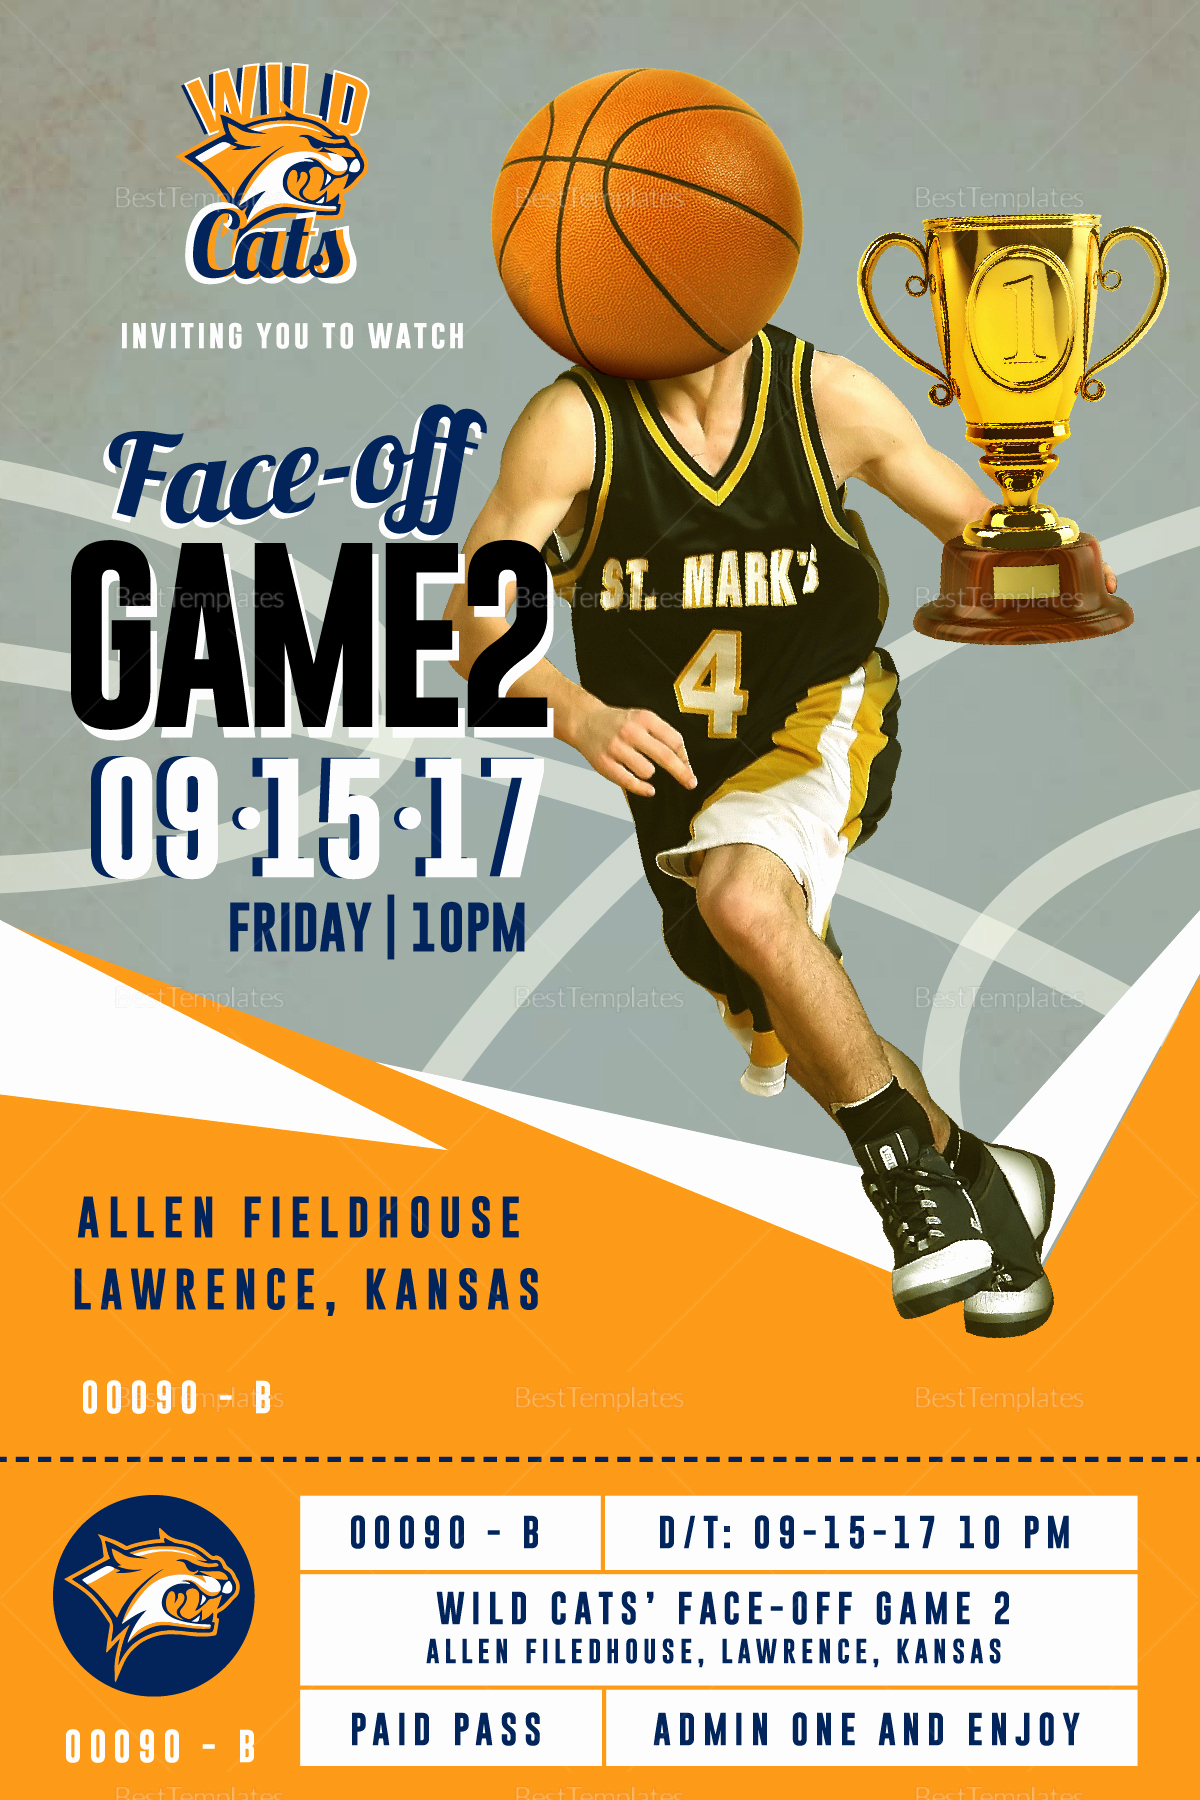 Basketball Ticket Invitation Template Free Lovely Basketball Ticket Invitation Card Design Template In Psd